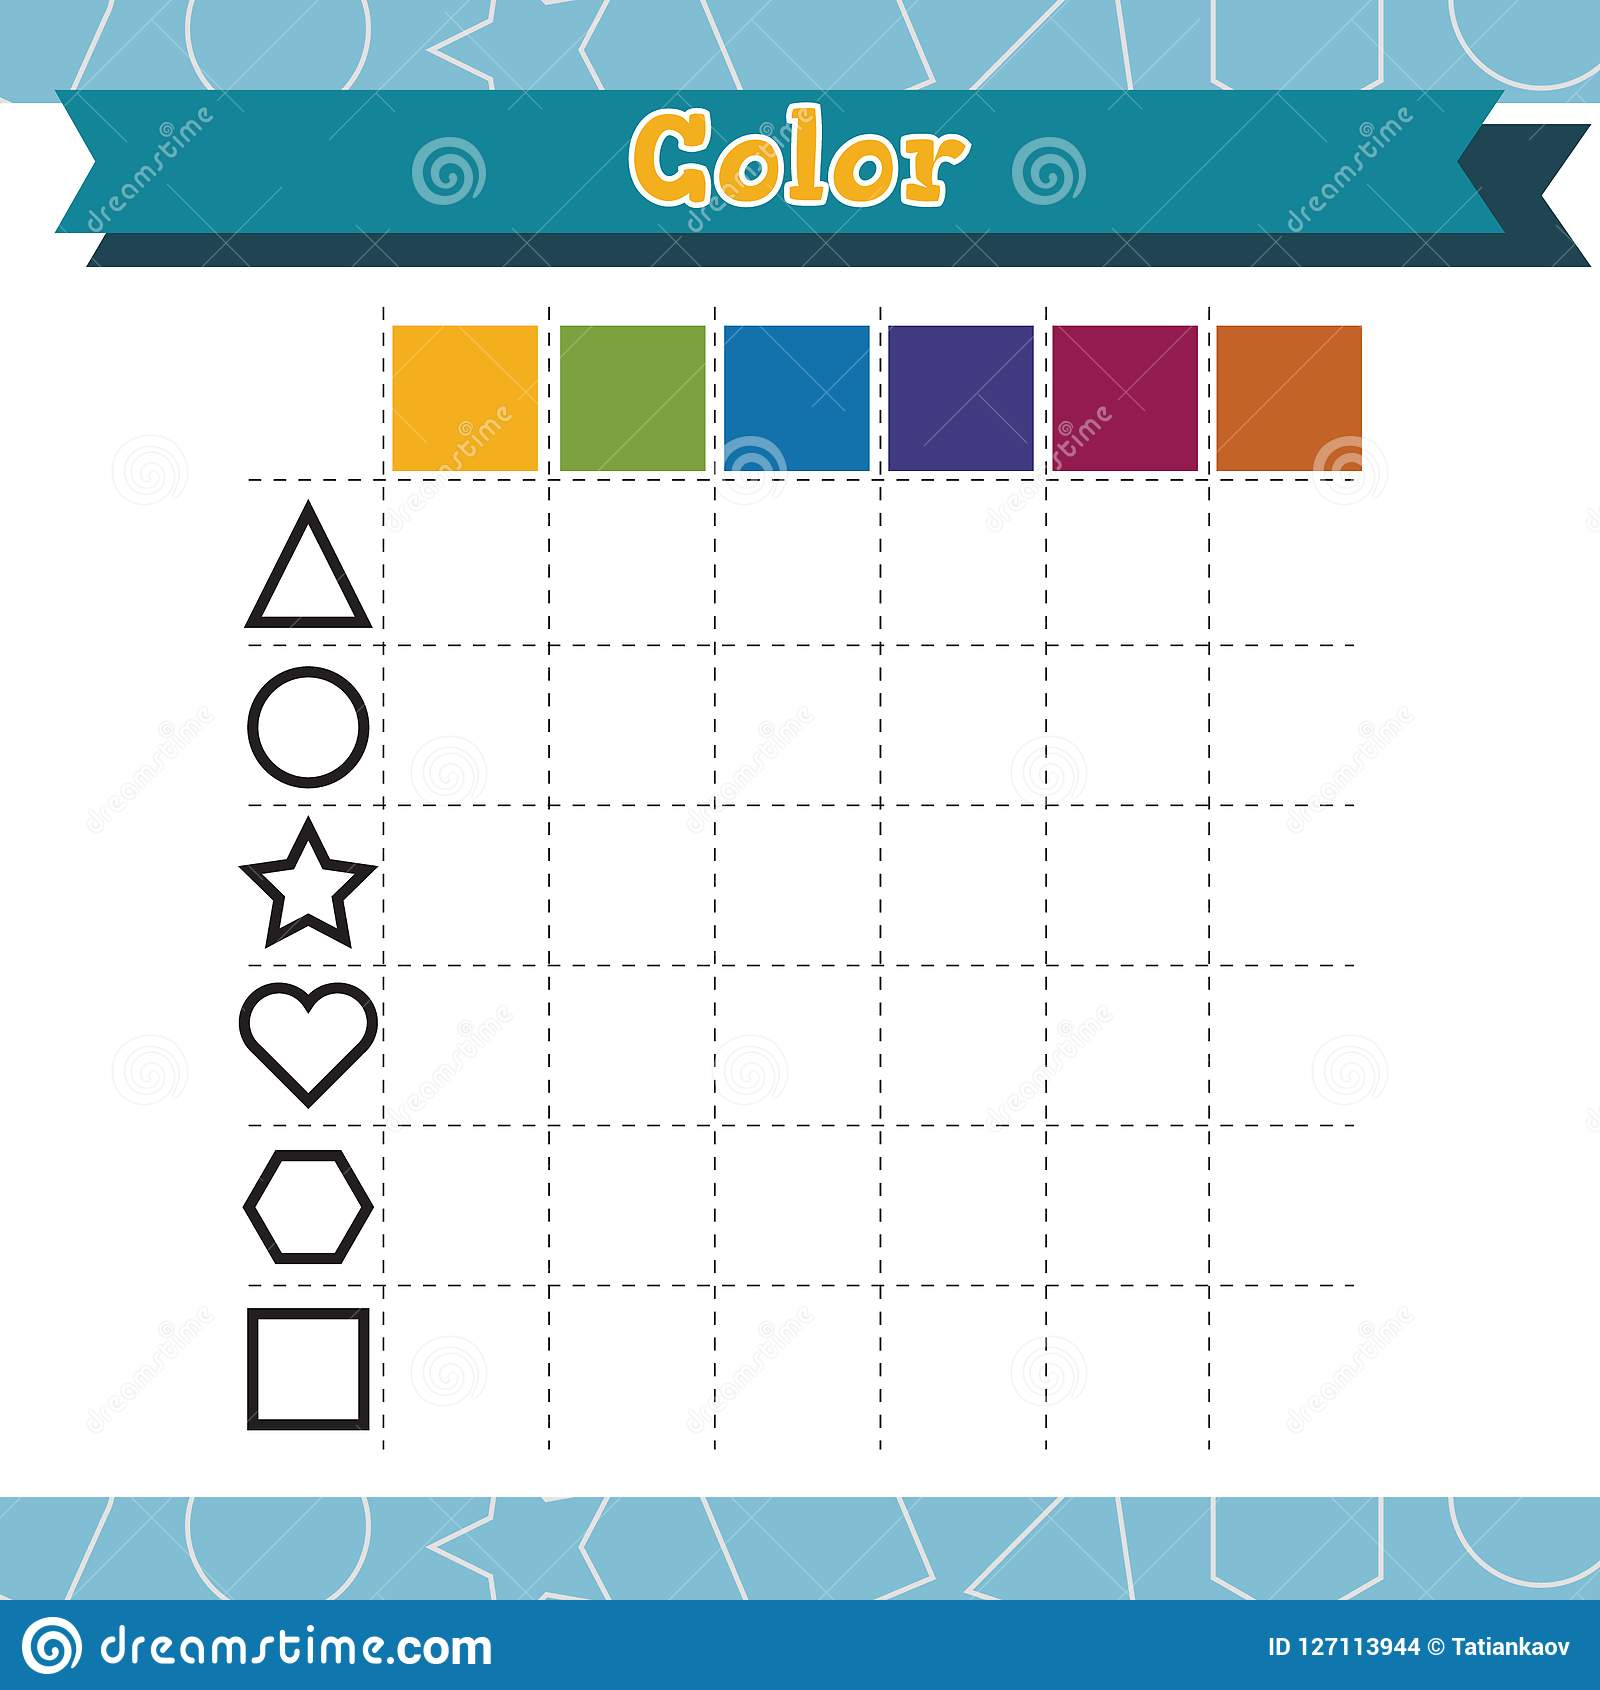 Learn Shapes And Geometric Figures Color Preschool Or